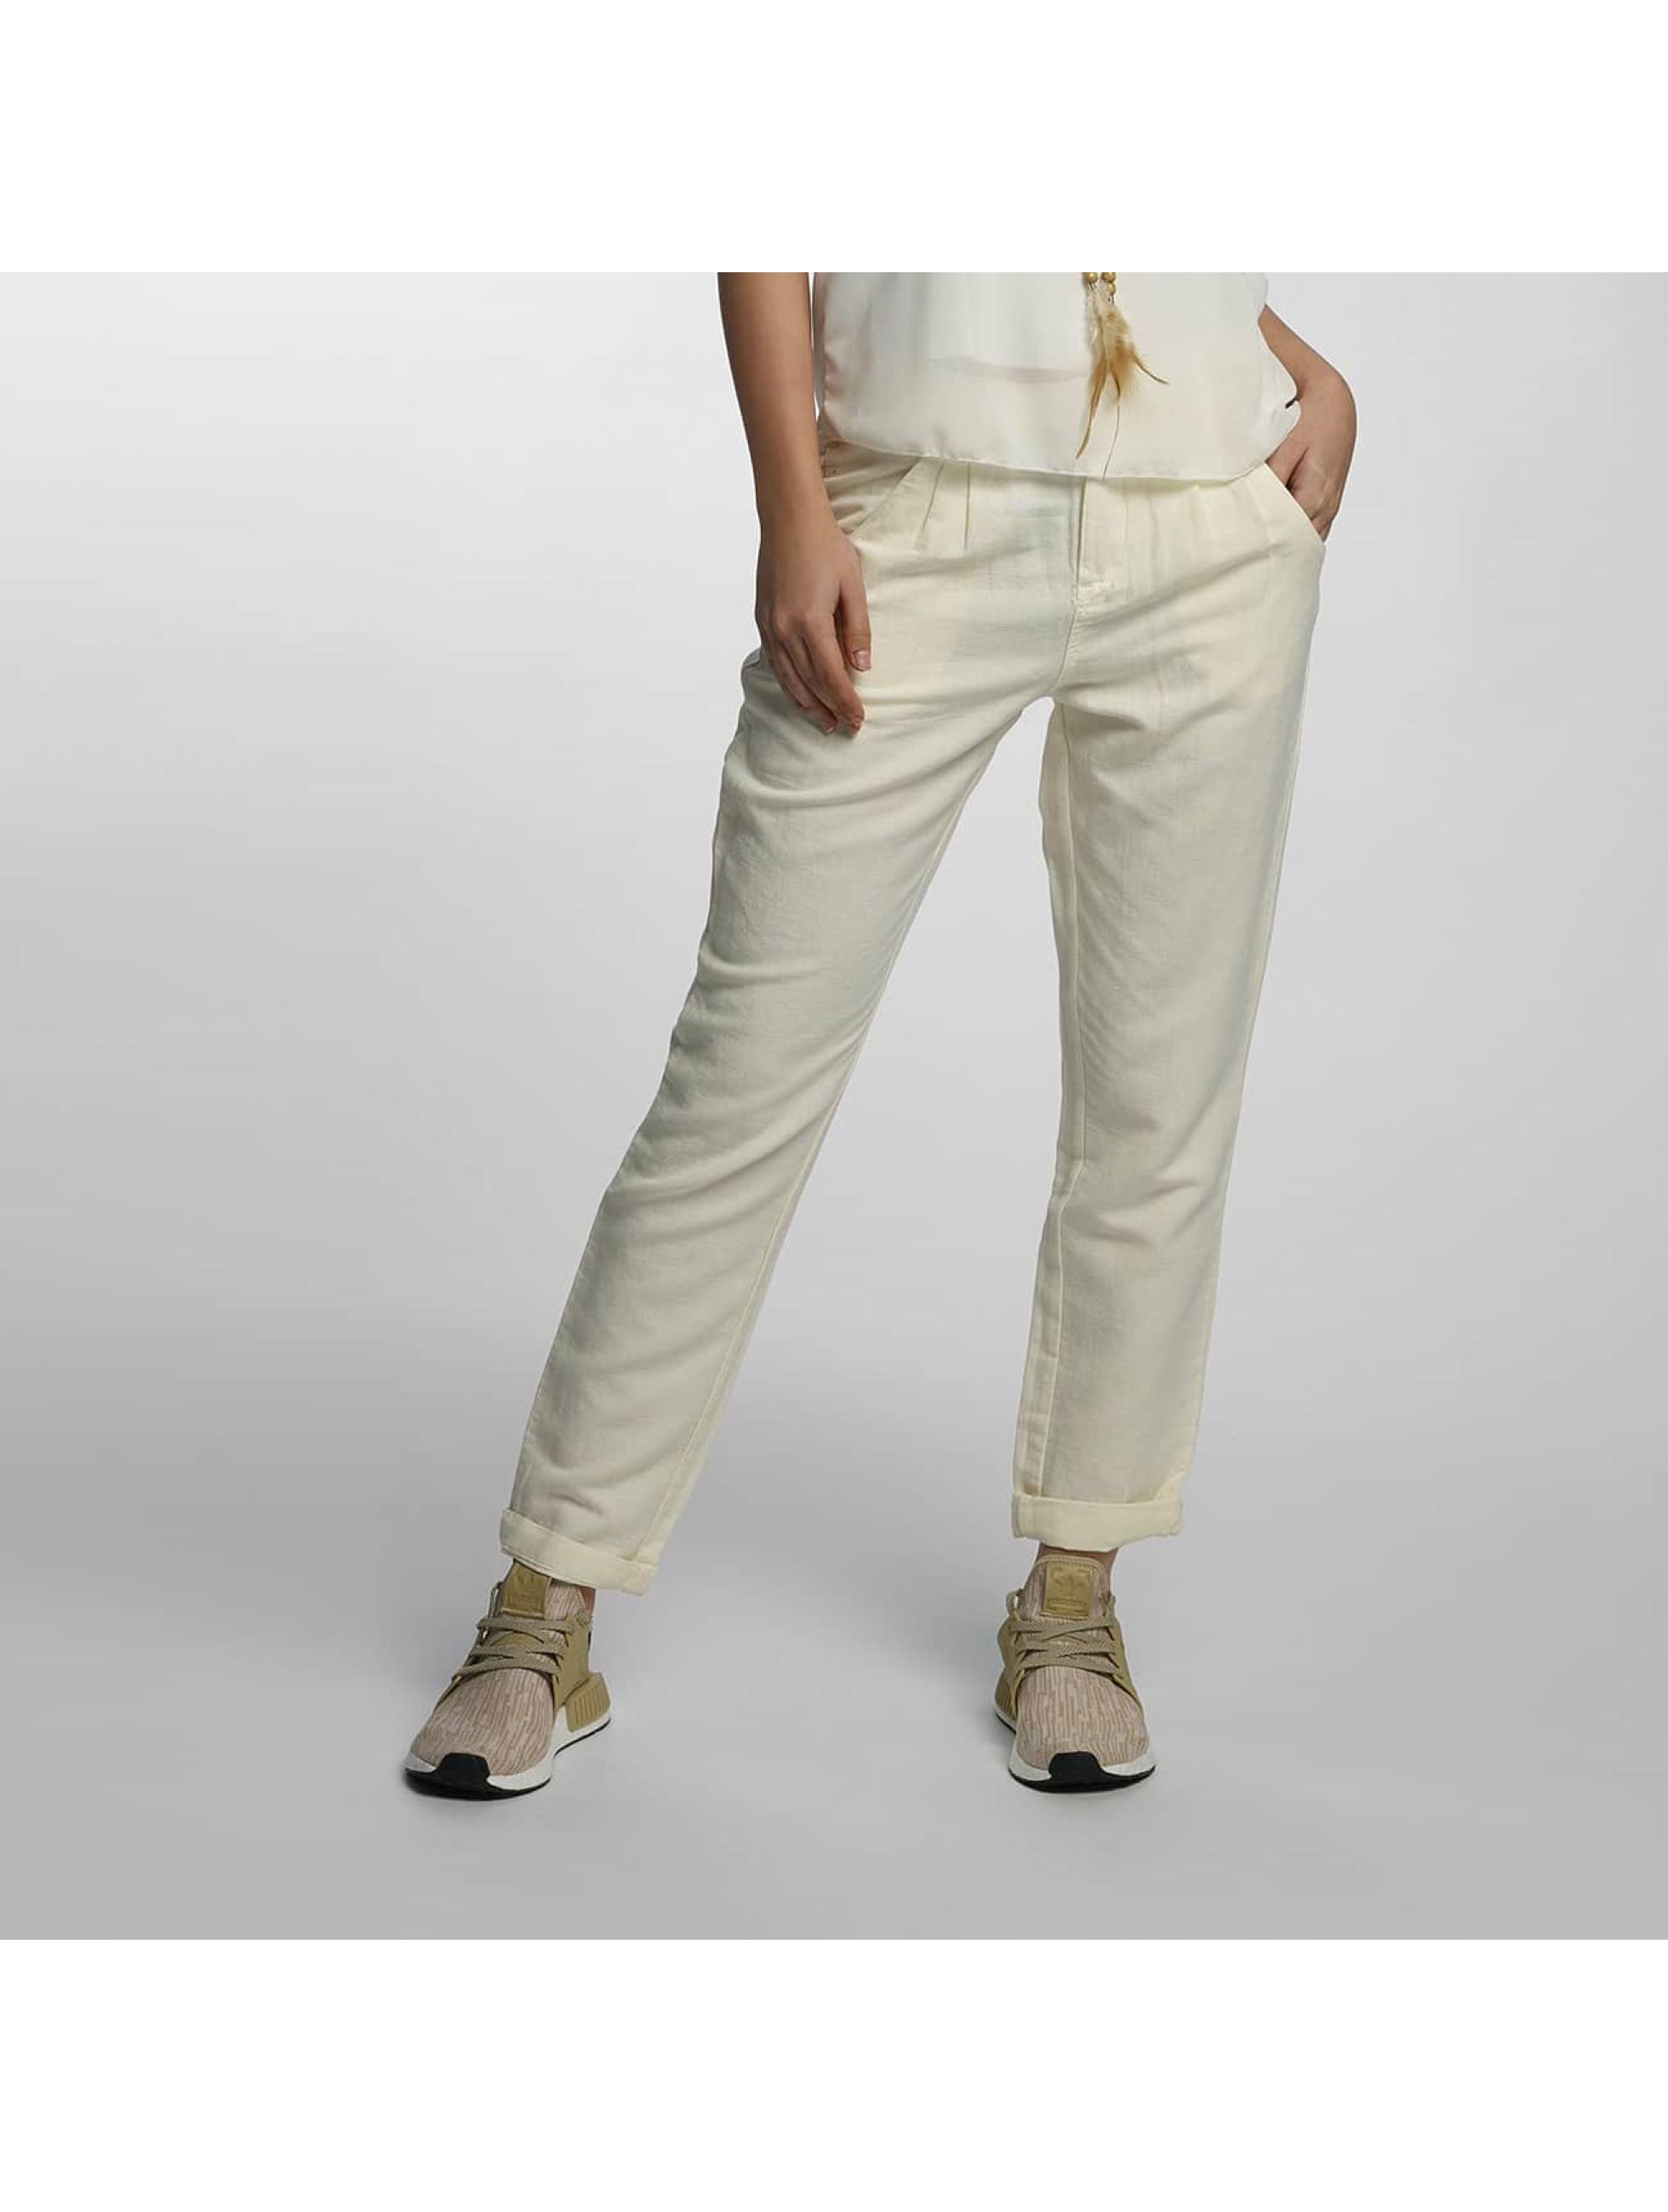 Oxbow Frauen Chino Romana in weiß